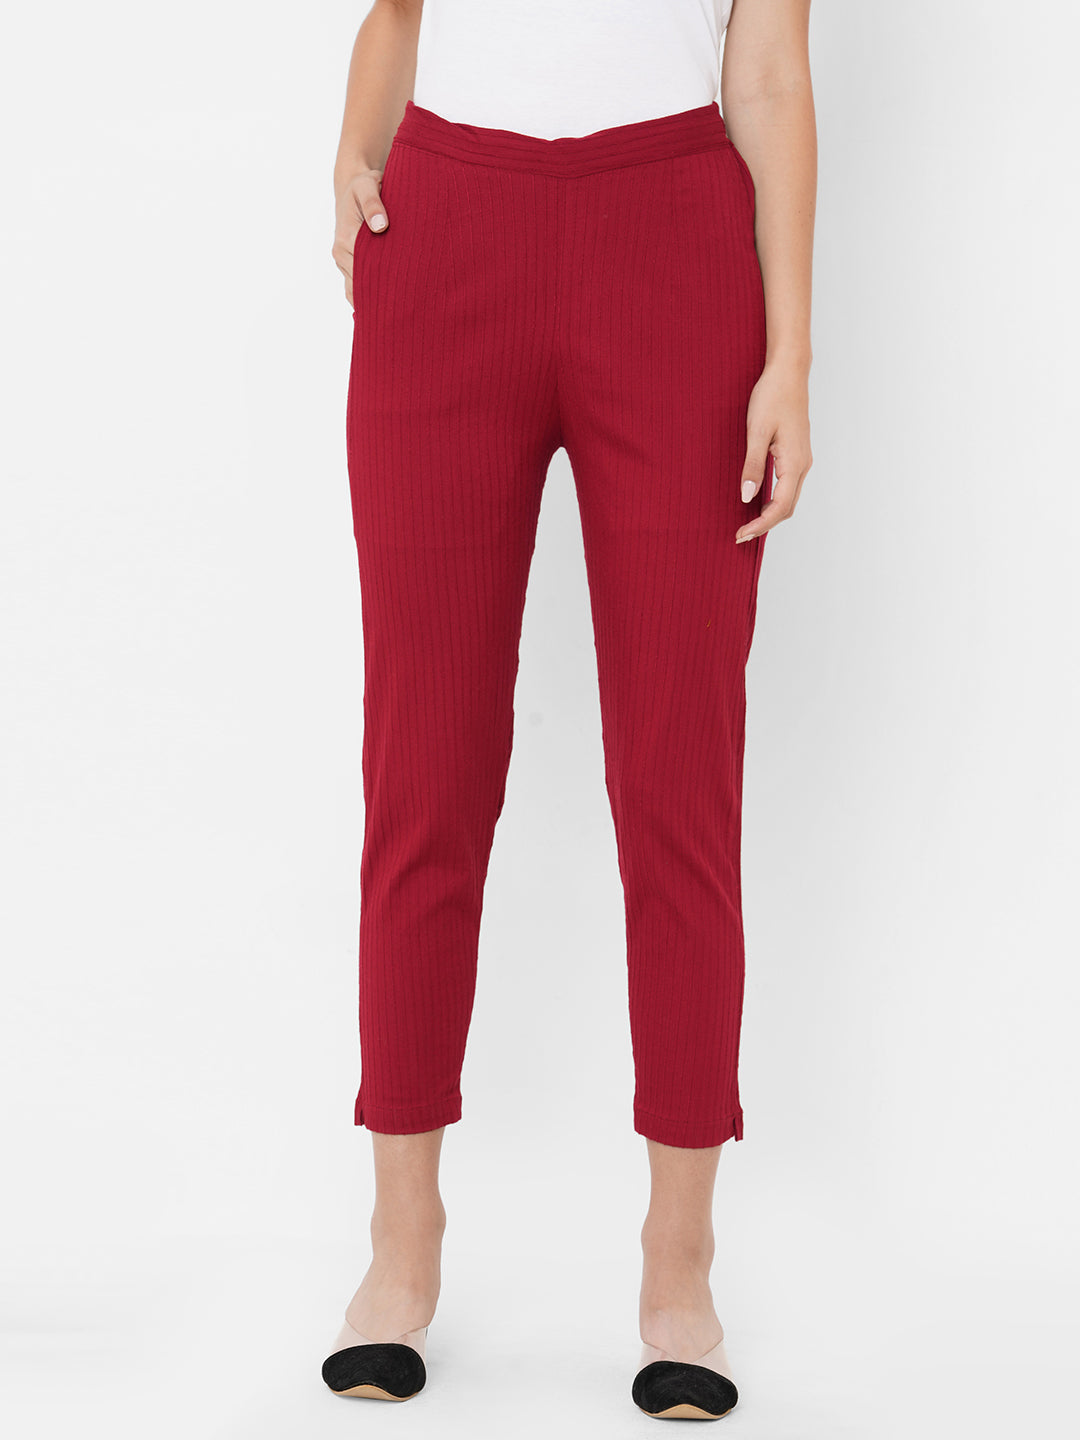 Woven Striped Solid Lycra Pant - Maroon